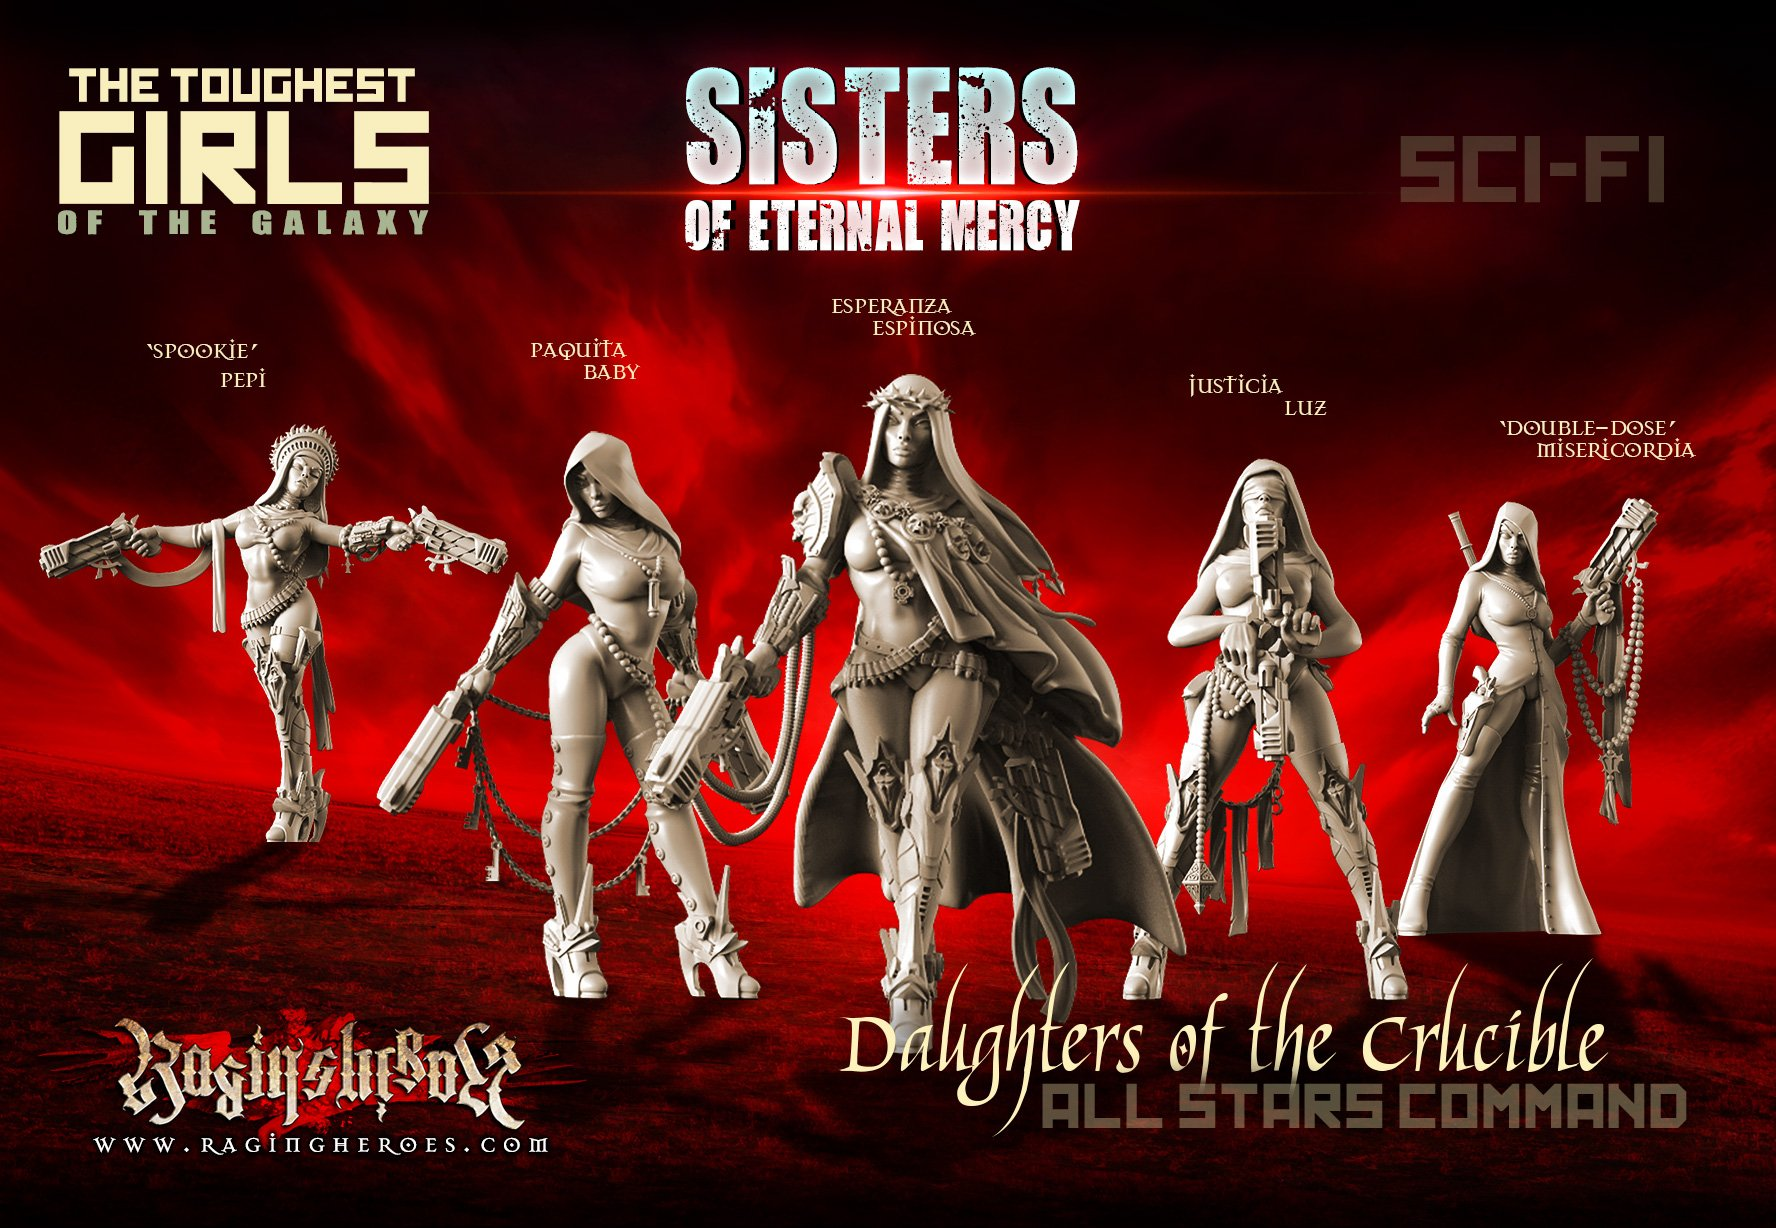 Daughters of the Crucible - All Stars Command Group (Sisters - SF)